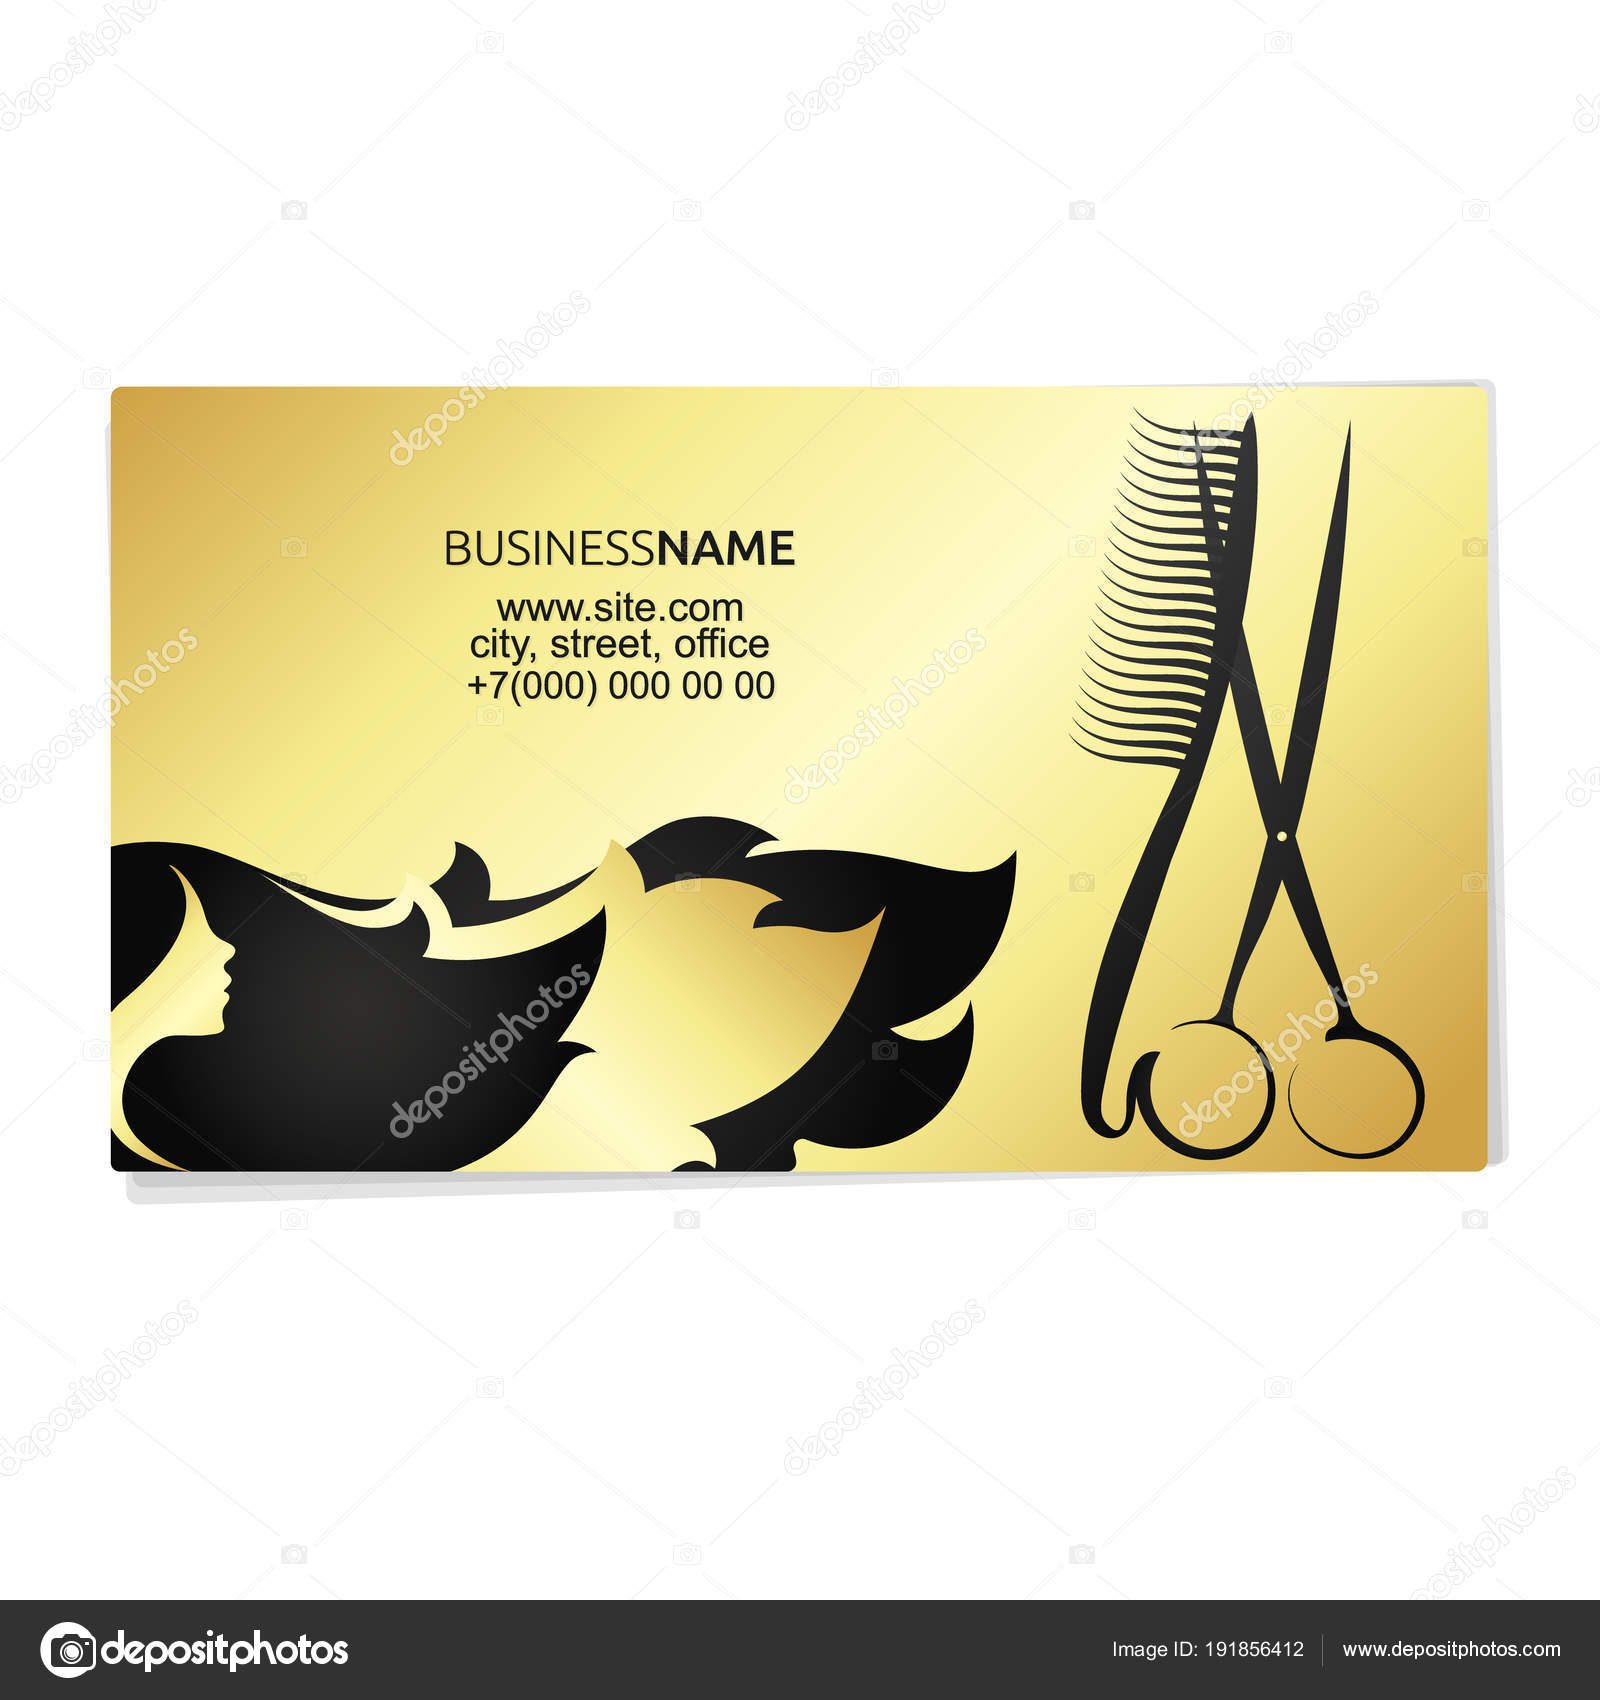 Beauty salon business card gold — Stock Vector © john1279 #191856412